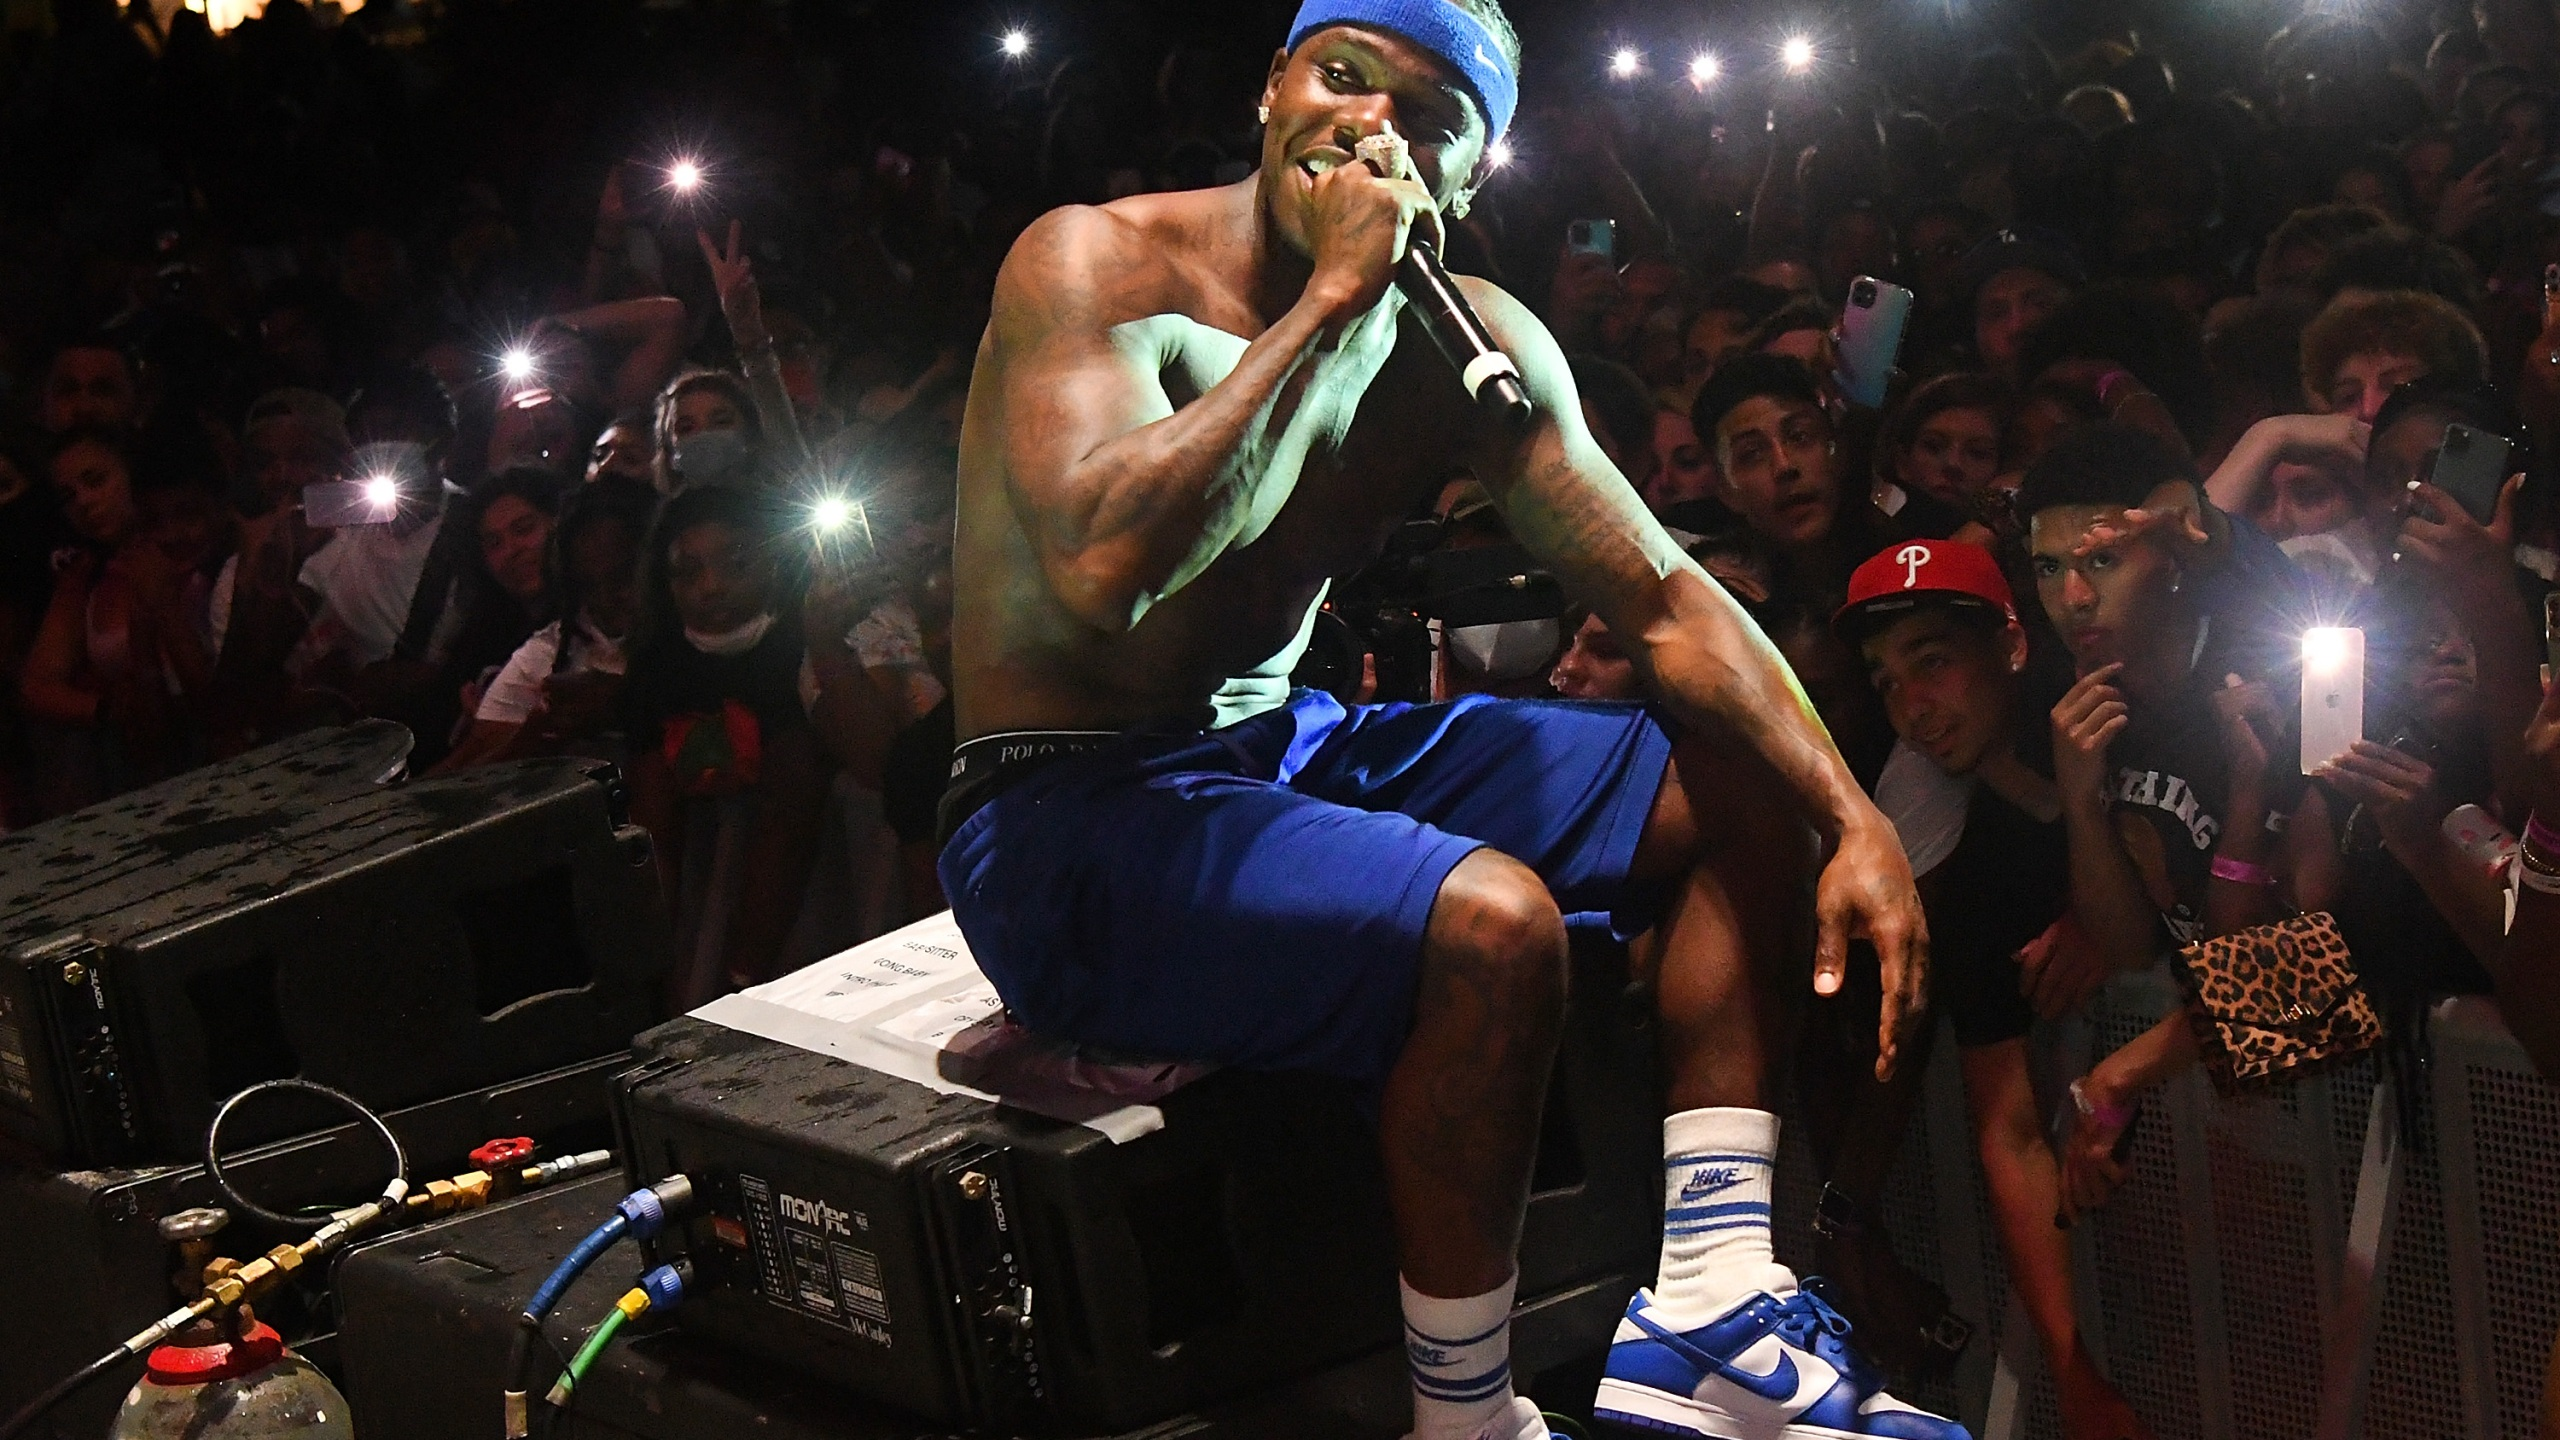 DaBaby performs during DaBaby + Friends Concert at Orlando Amphitheater on April 17, 2021 in Orlando, Florida. (Gerardo Mora/Getty Images for Interscope)